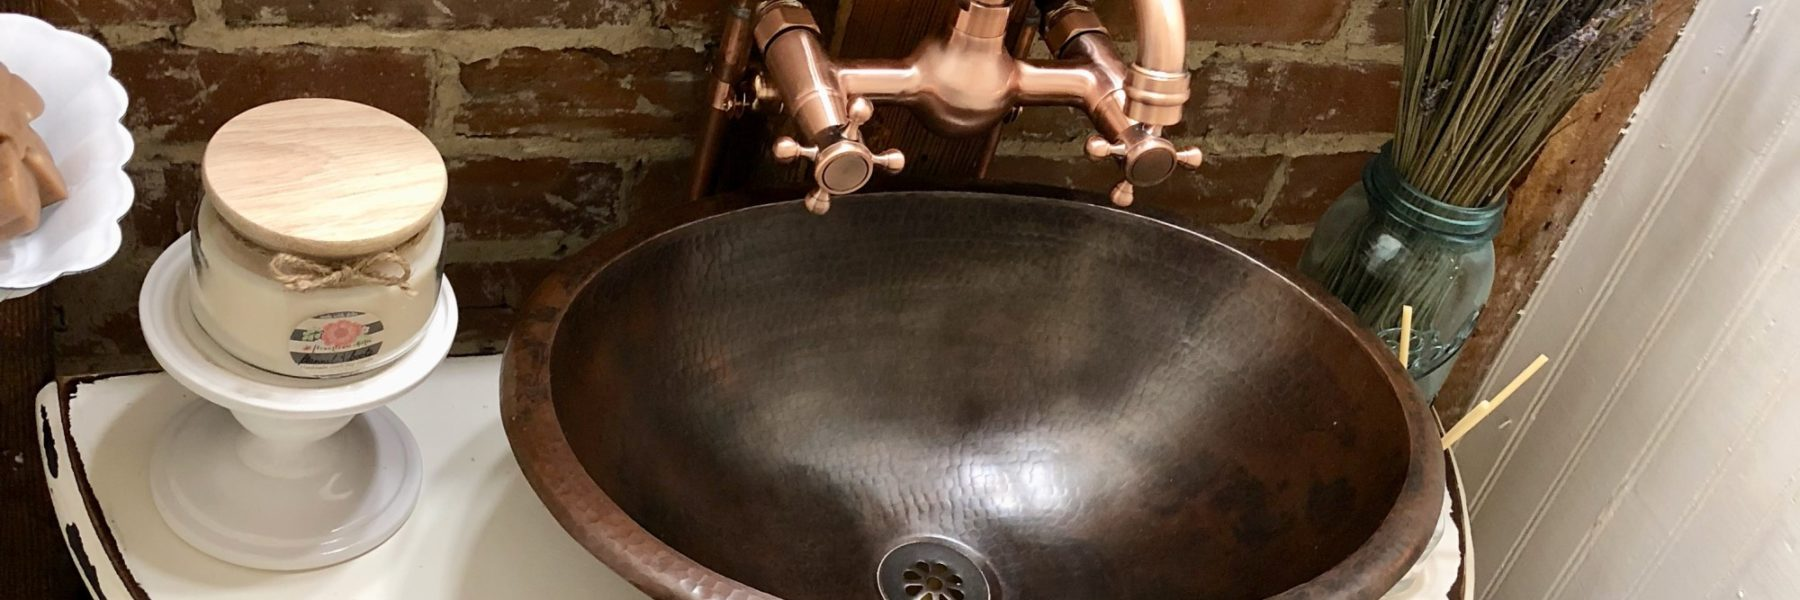 copper-sink-bathroom-after